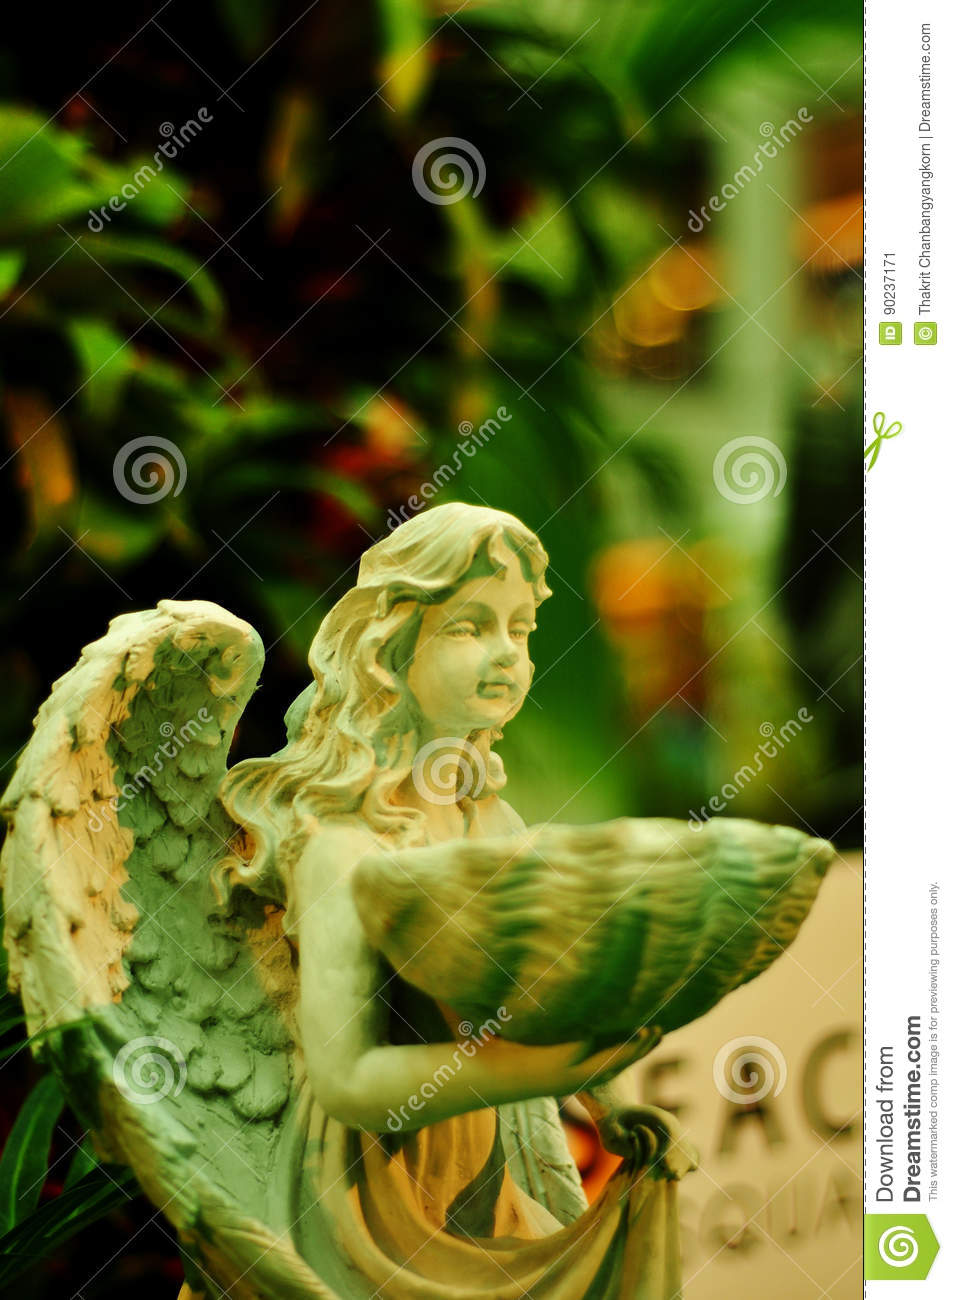 Faerie Statues Beautiful Fairy Stock Image Image Of Palace Girl Classical